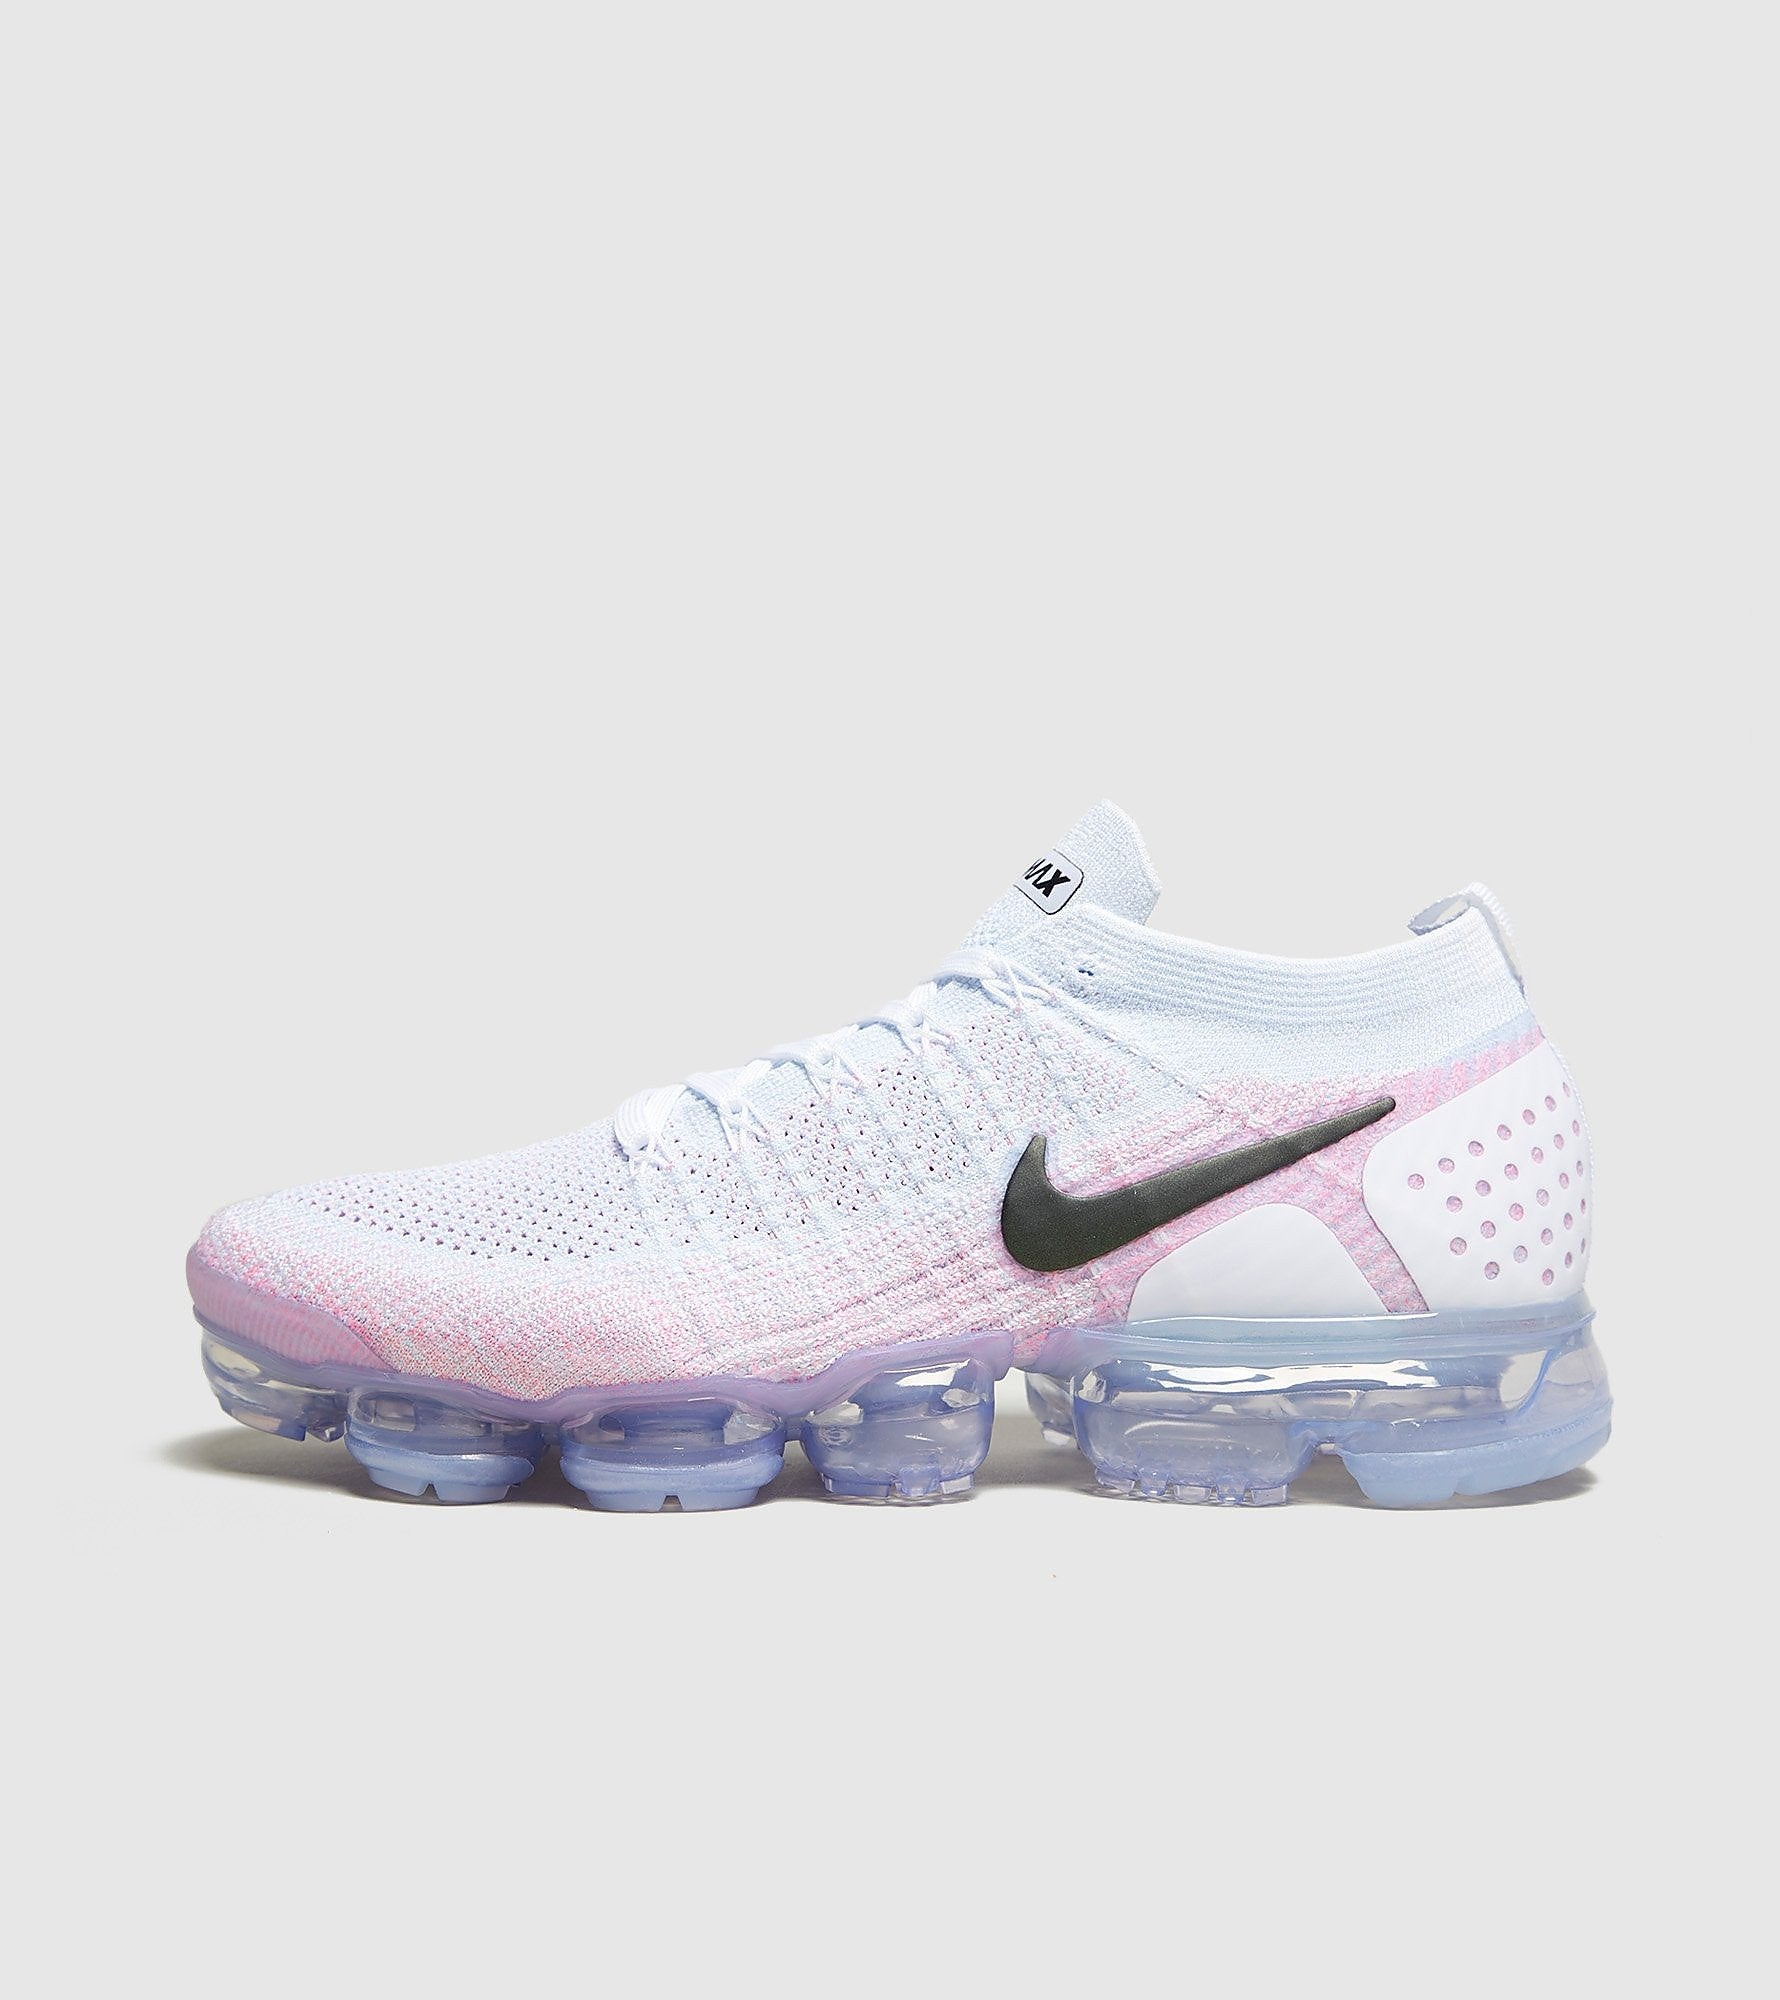 new concept be3b2 c52ca Nike Nike Air Vapormax Flyknit 2, White/Purple at Soleheaven Curated  Collections